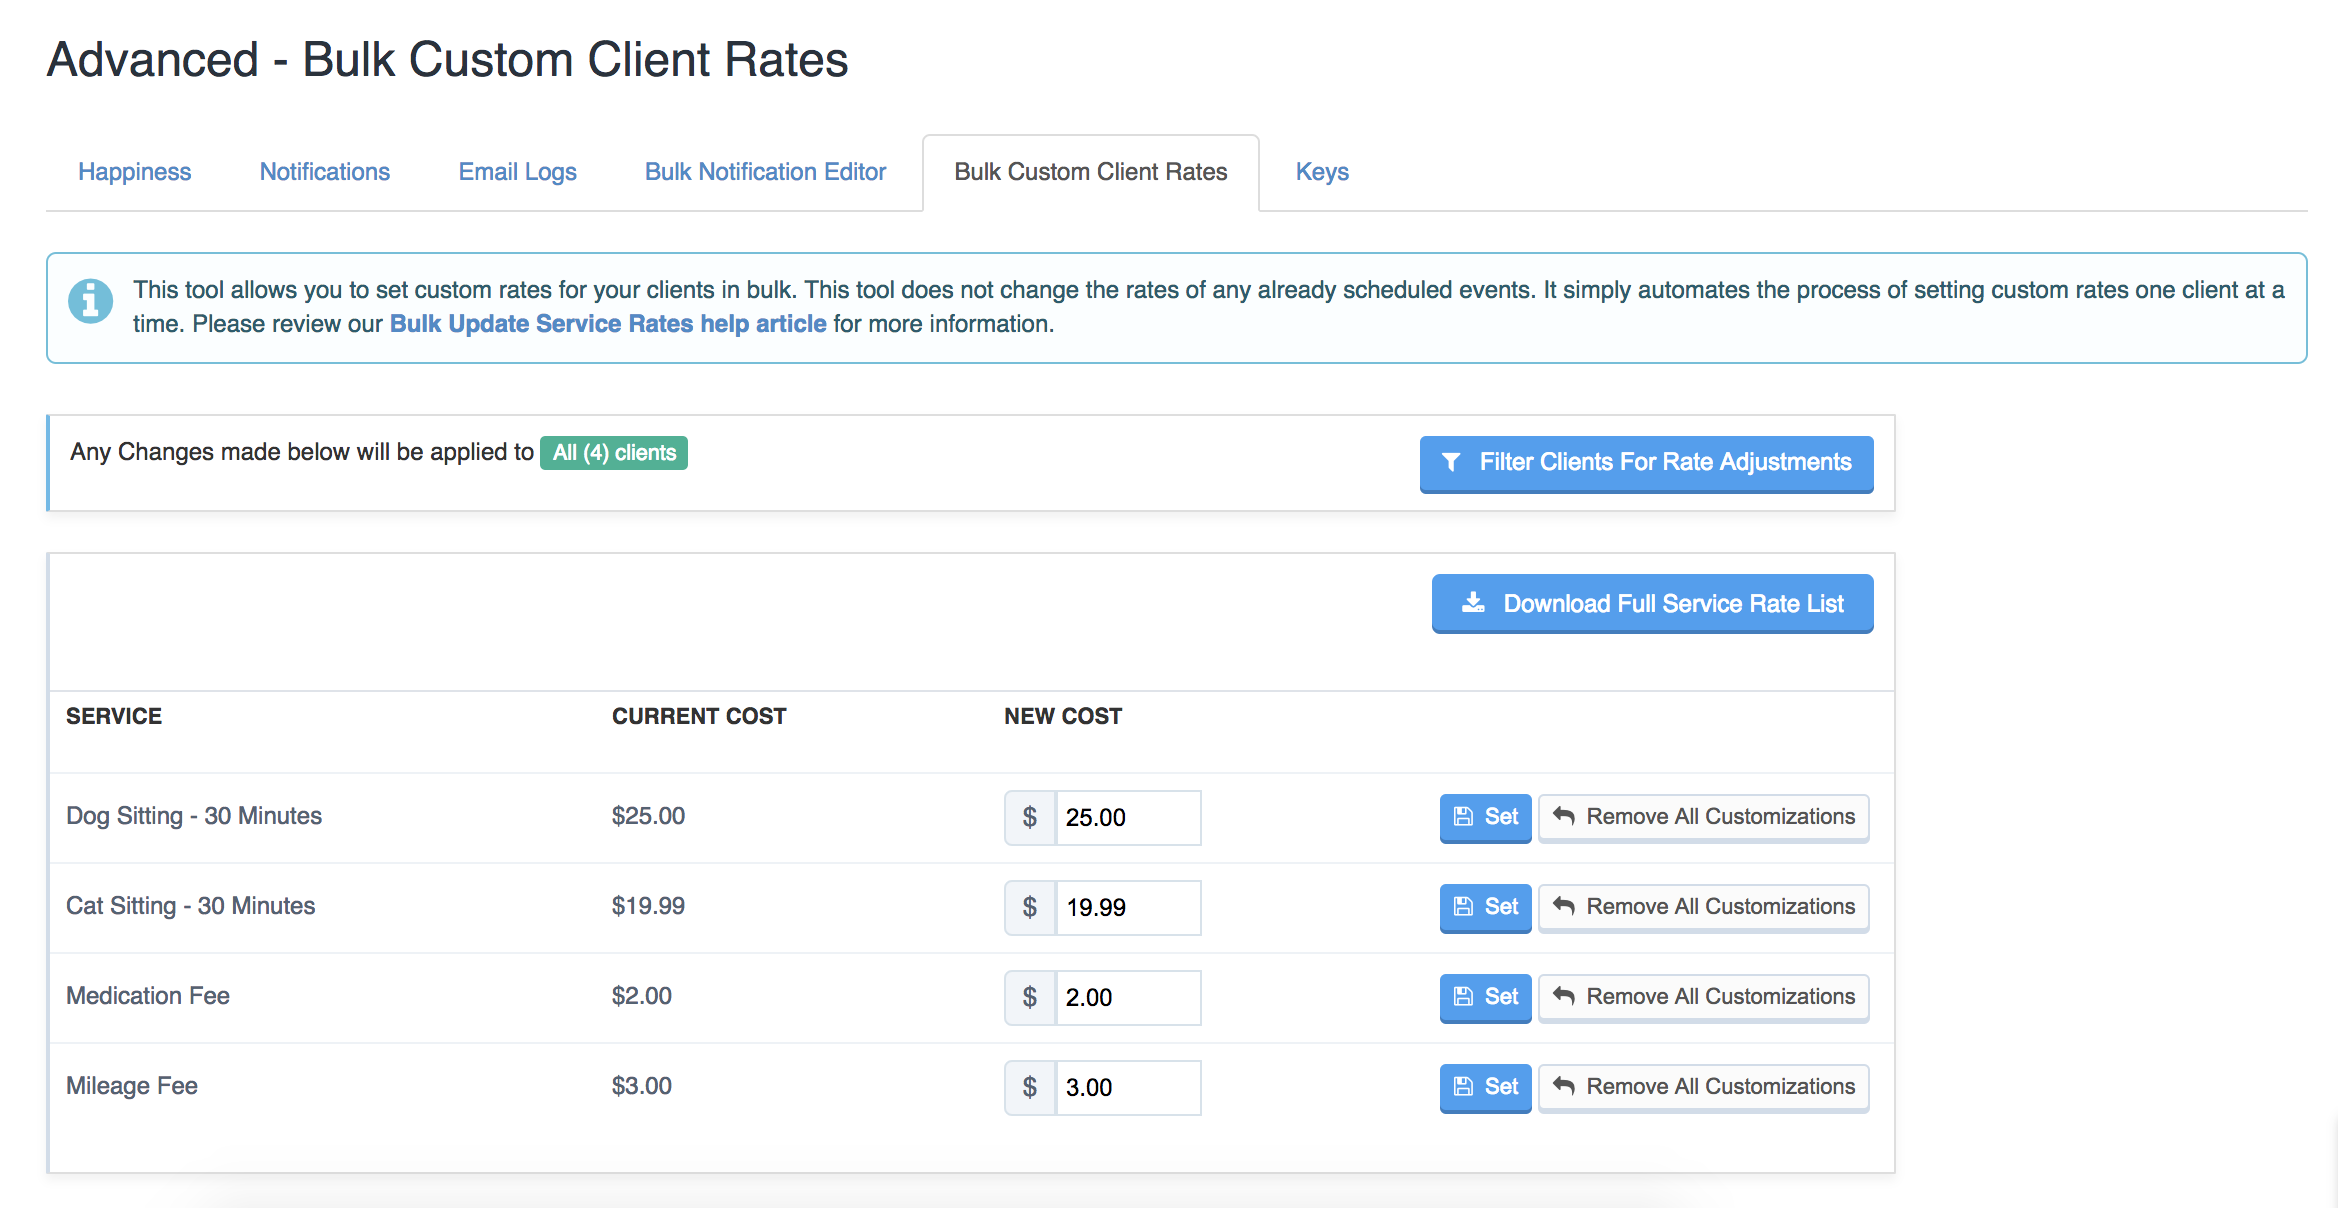 View of the Bulk Custom Client Rates screen